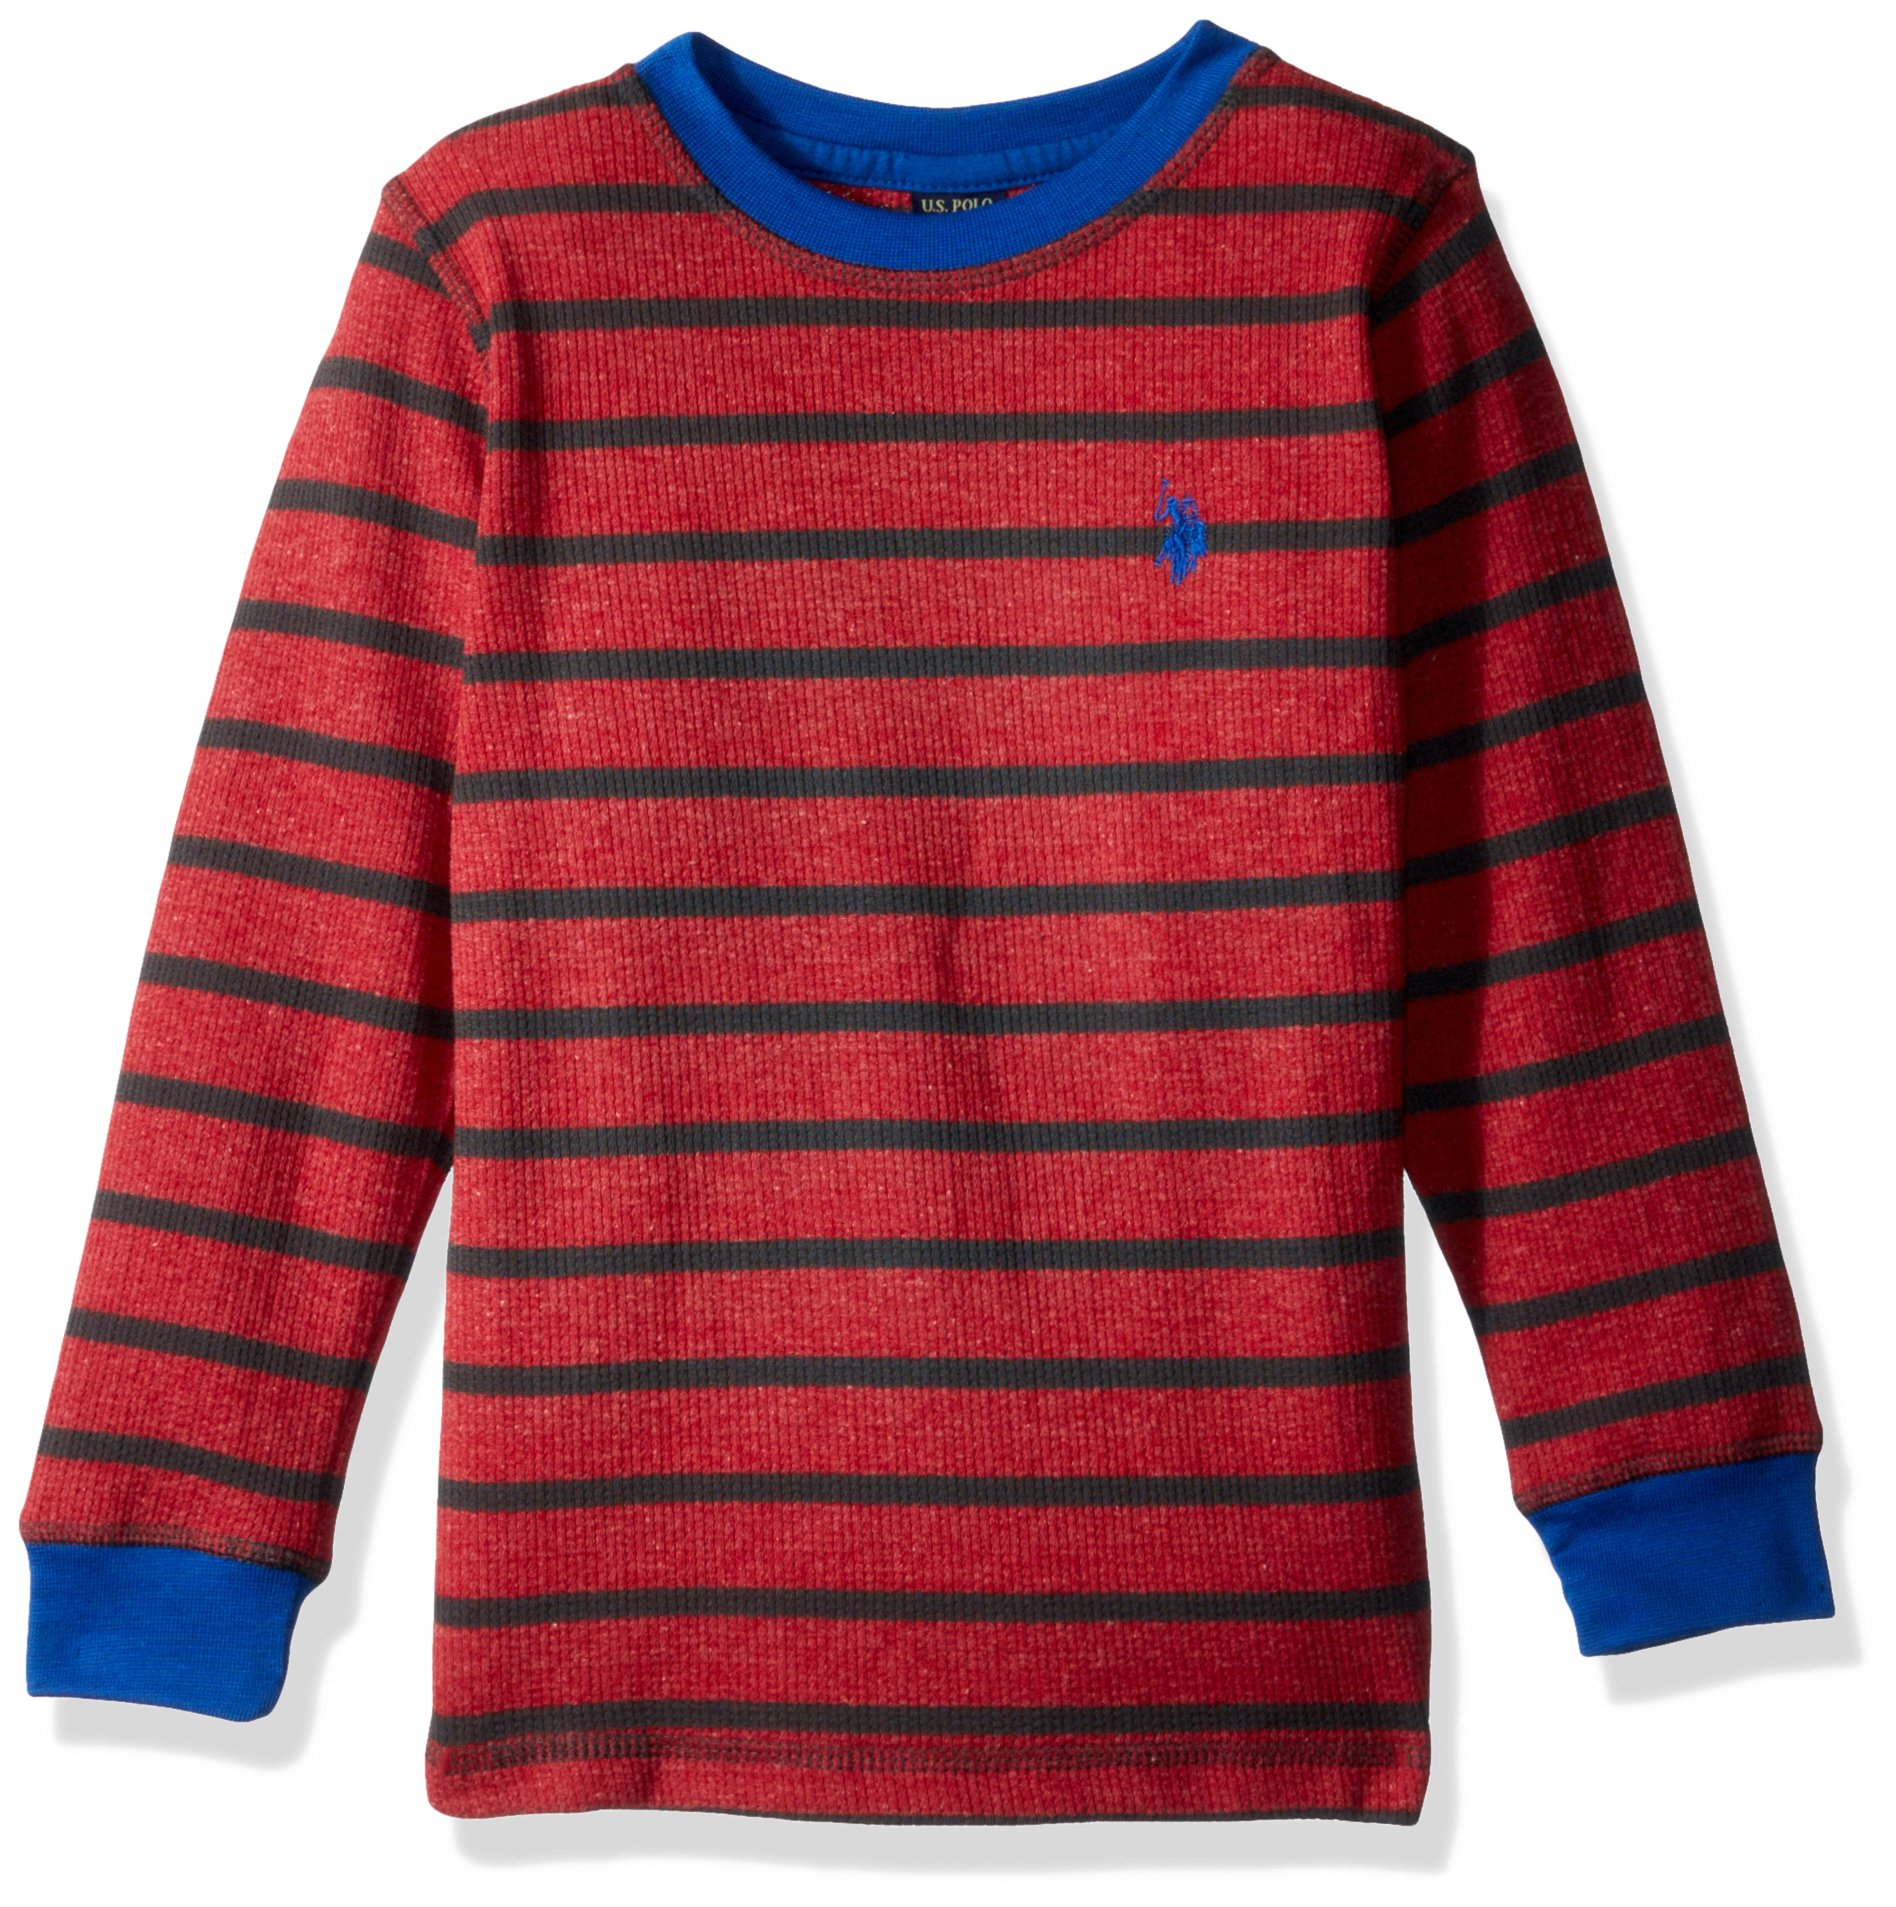 U.S. Polo Assn. Big Boys' Long Sleeve Fancy Crew Neck Thermal, Red Heather Hd, 10/12